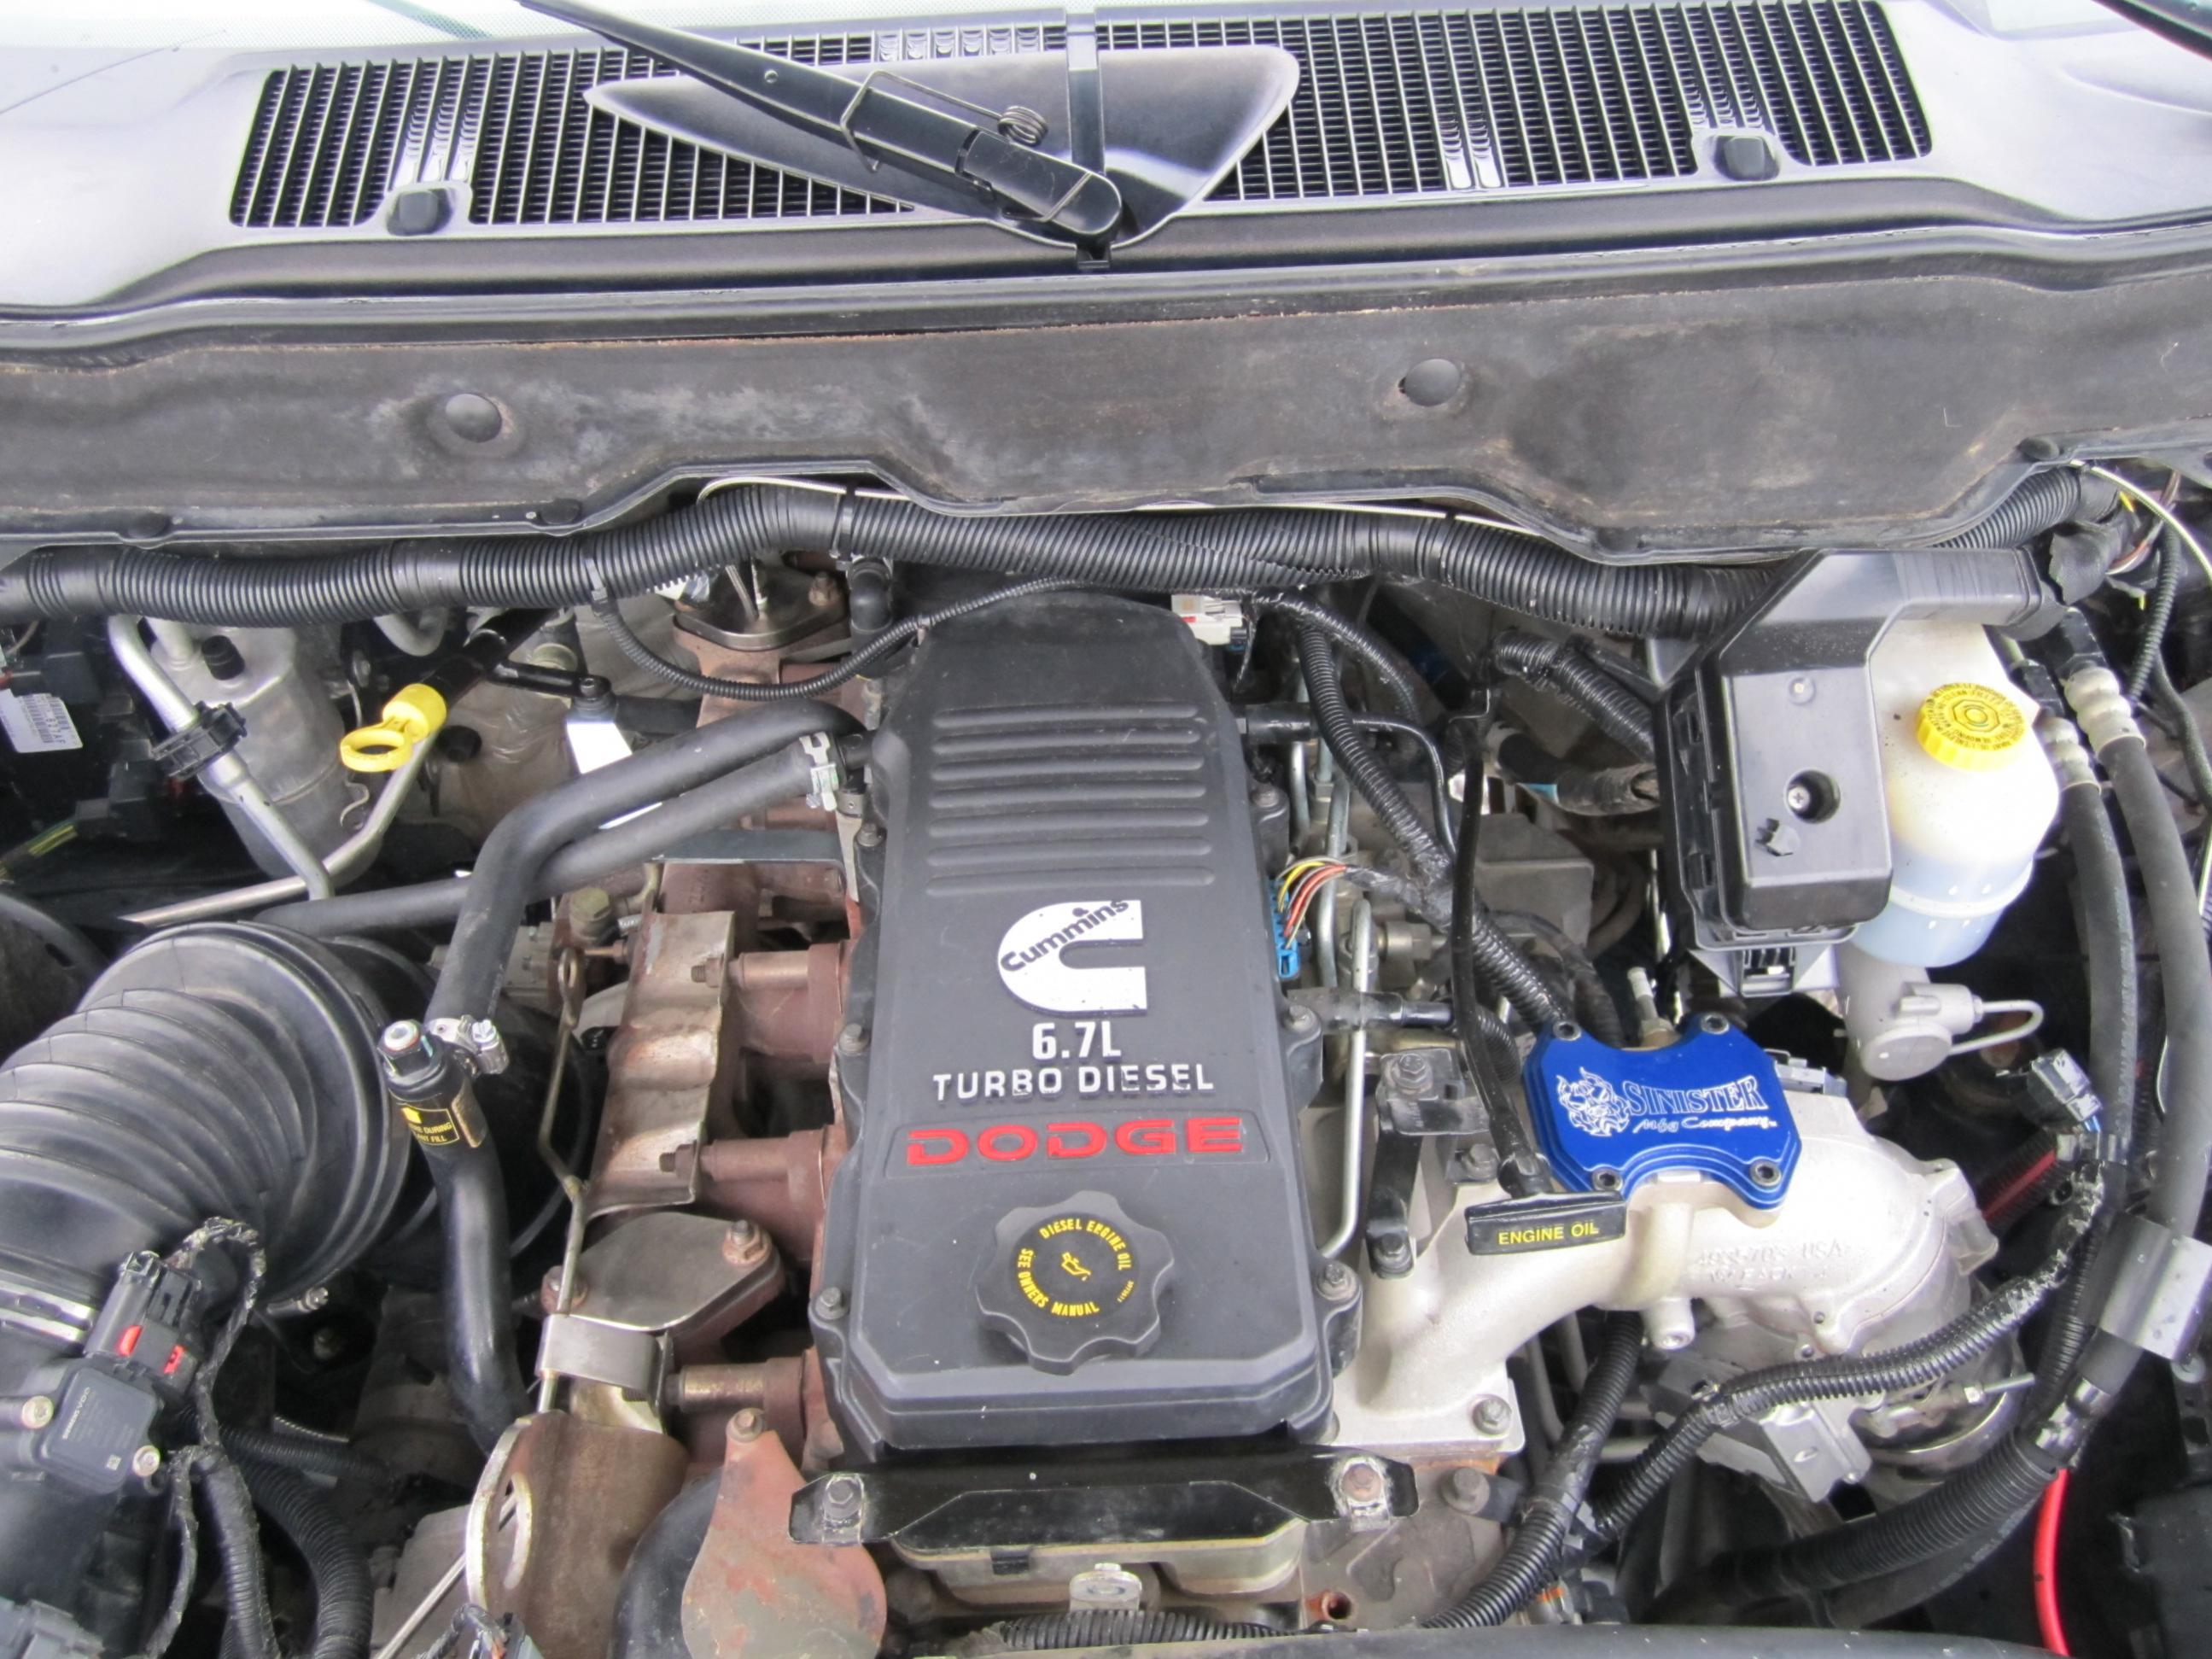 64 Powerstroke Maintenance Dpf Delete Kits 6 4 Wiring Engine Diagram Download